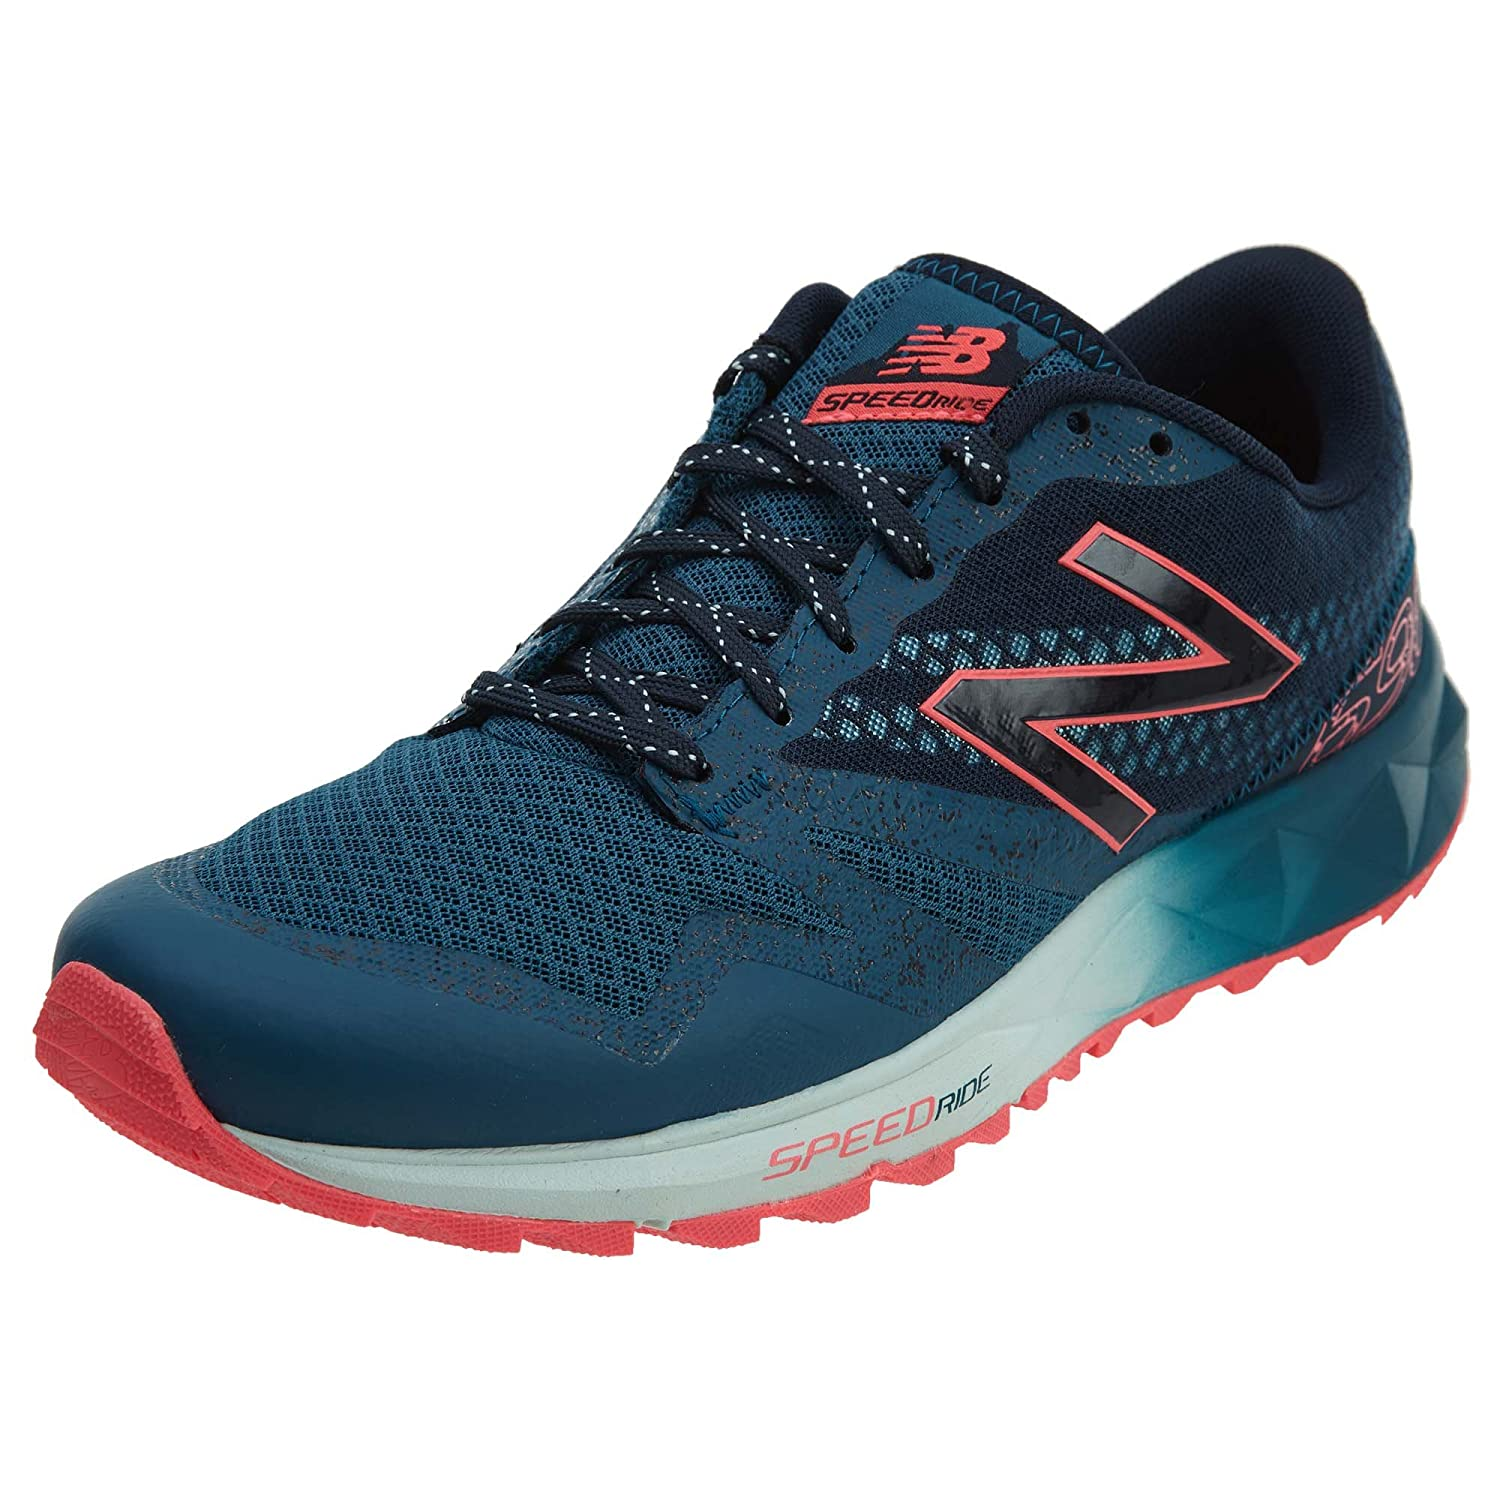 New Balance Women's wt690 Trail Running Sneaker B0784SNBLL 9 D US|Teal/Pink